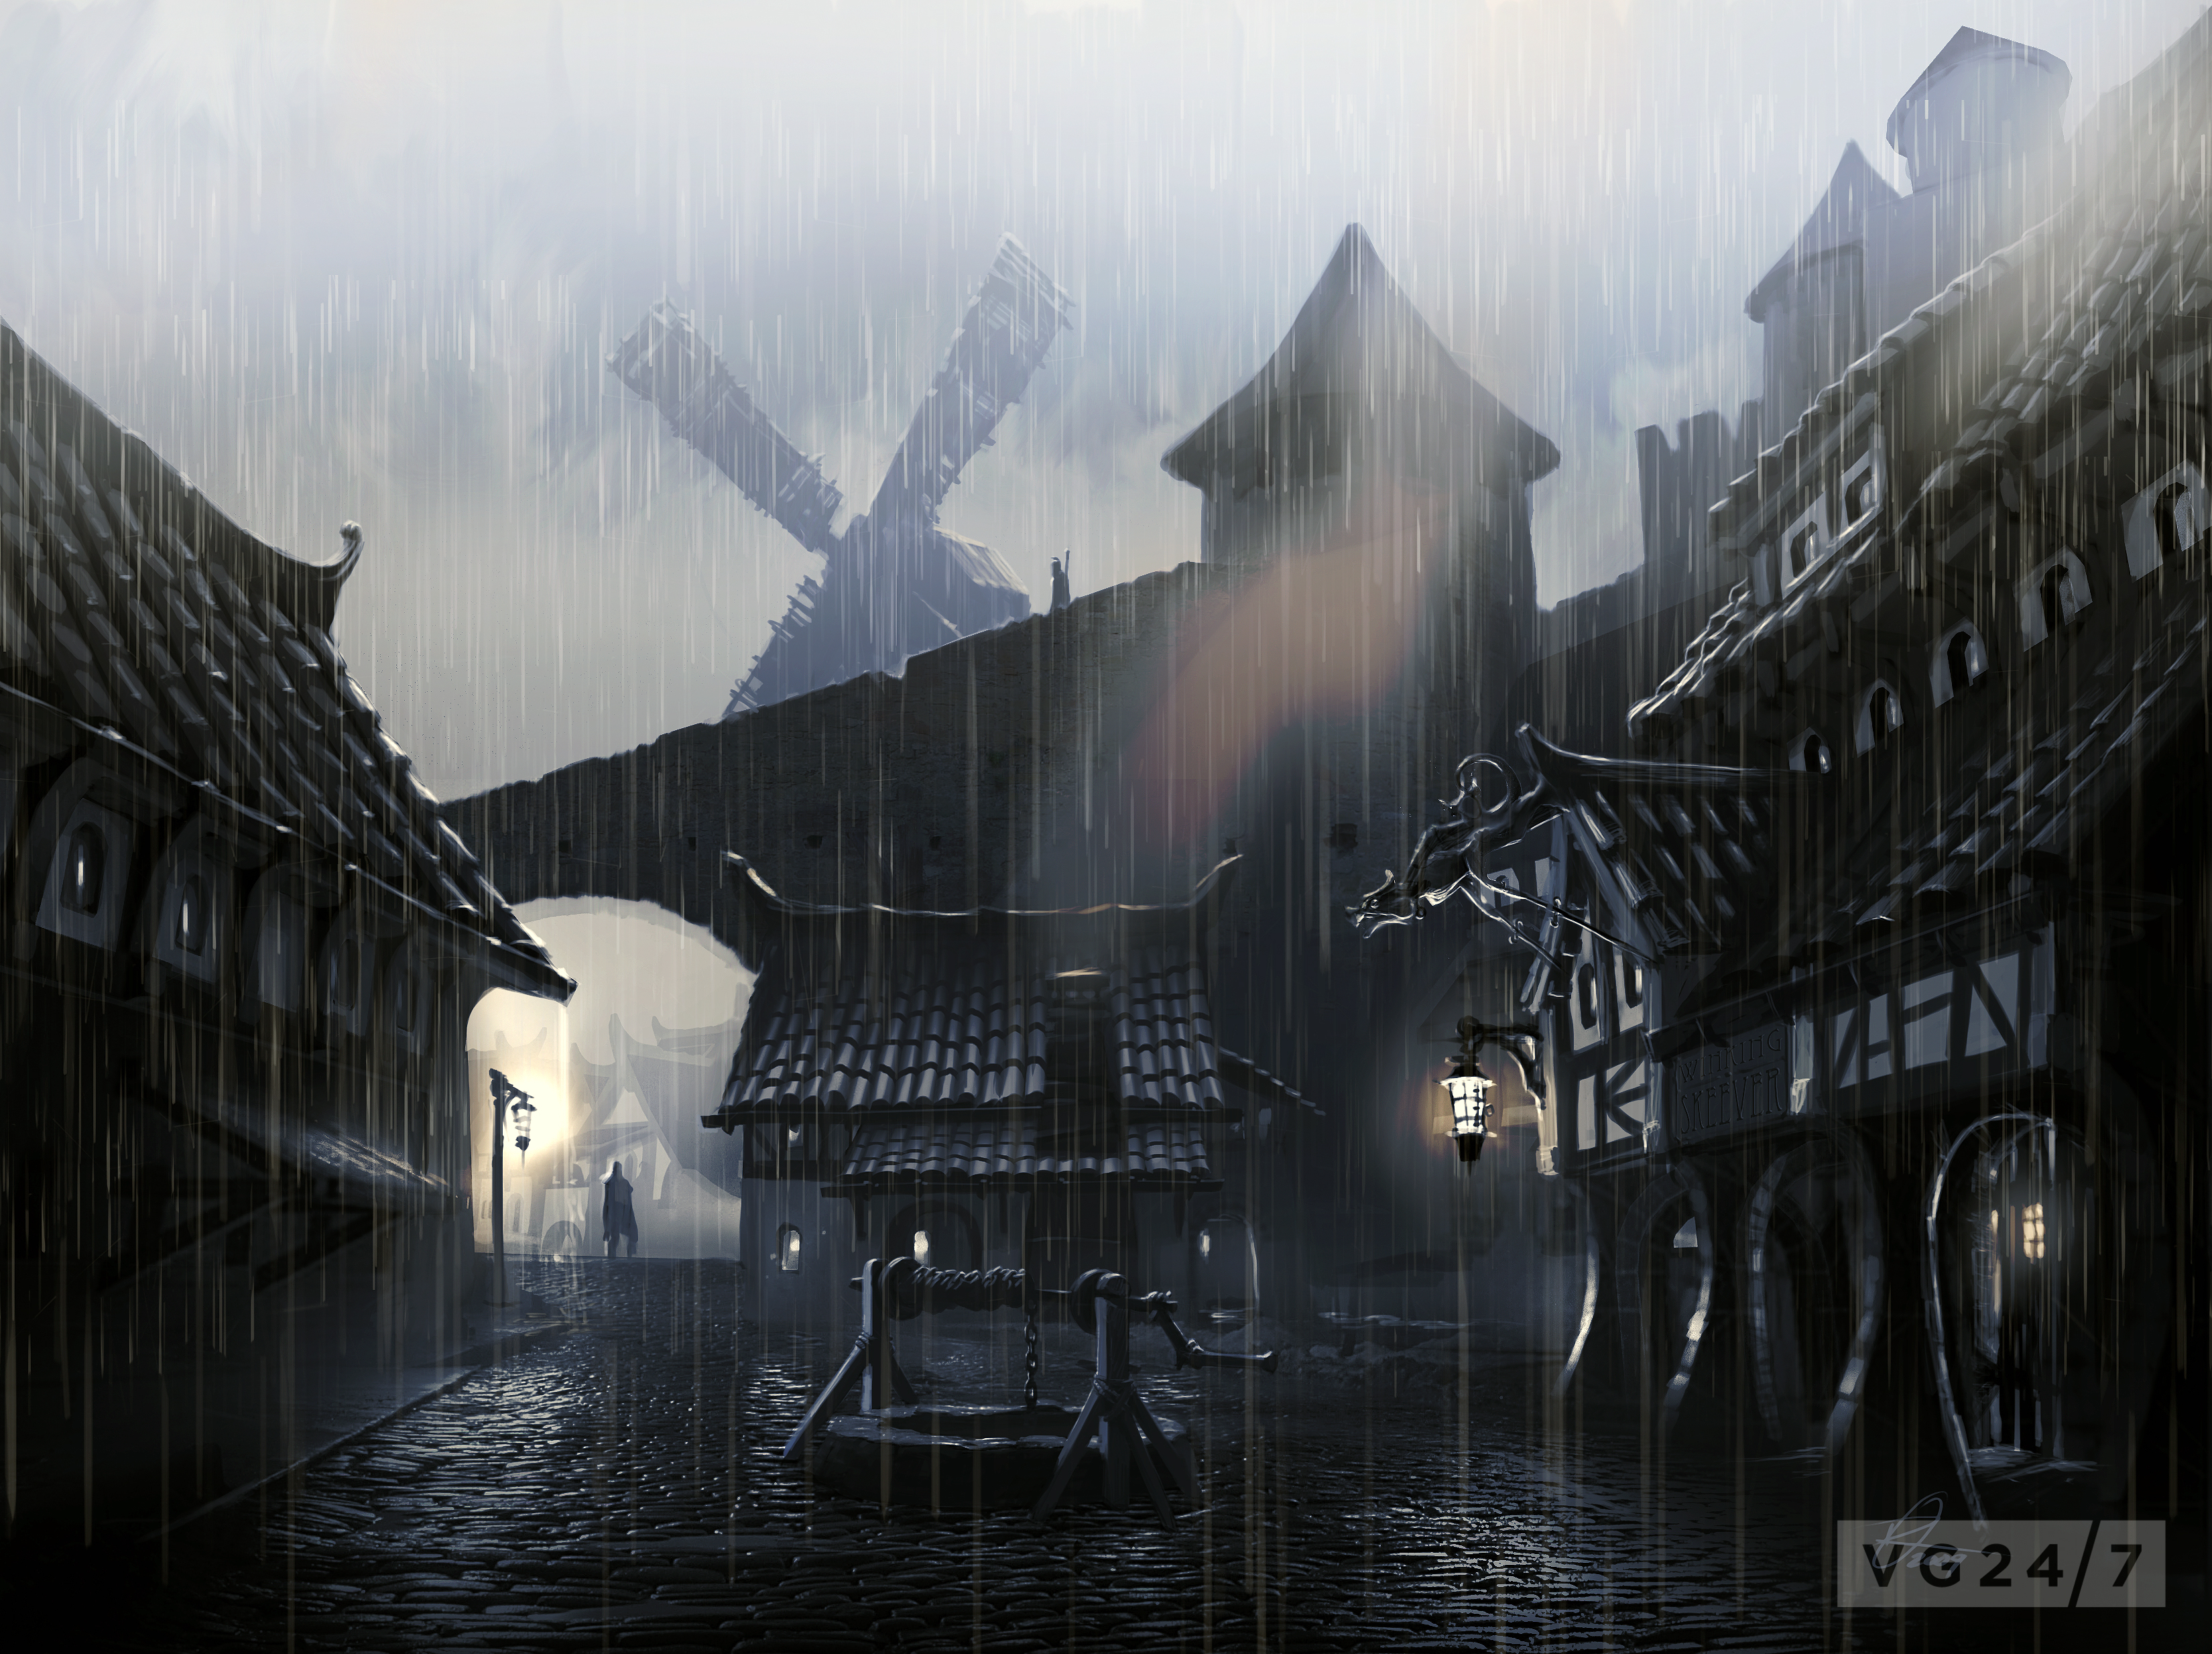 Quick Shots Skyrim Concept Art Depicts People And Places VG247